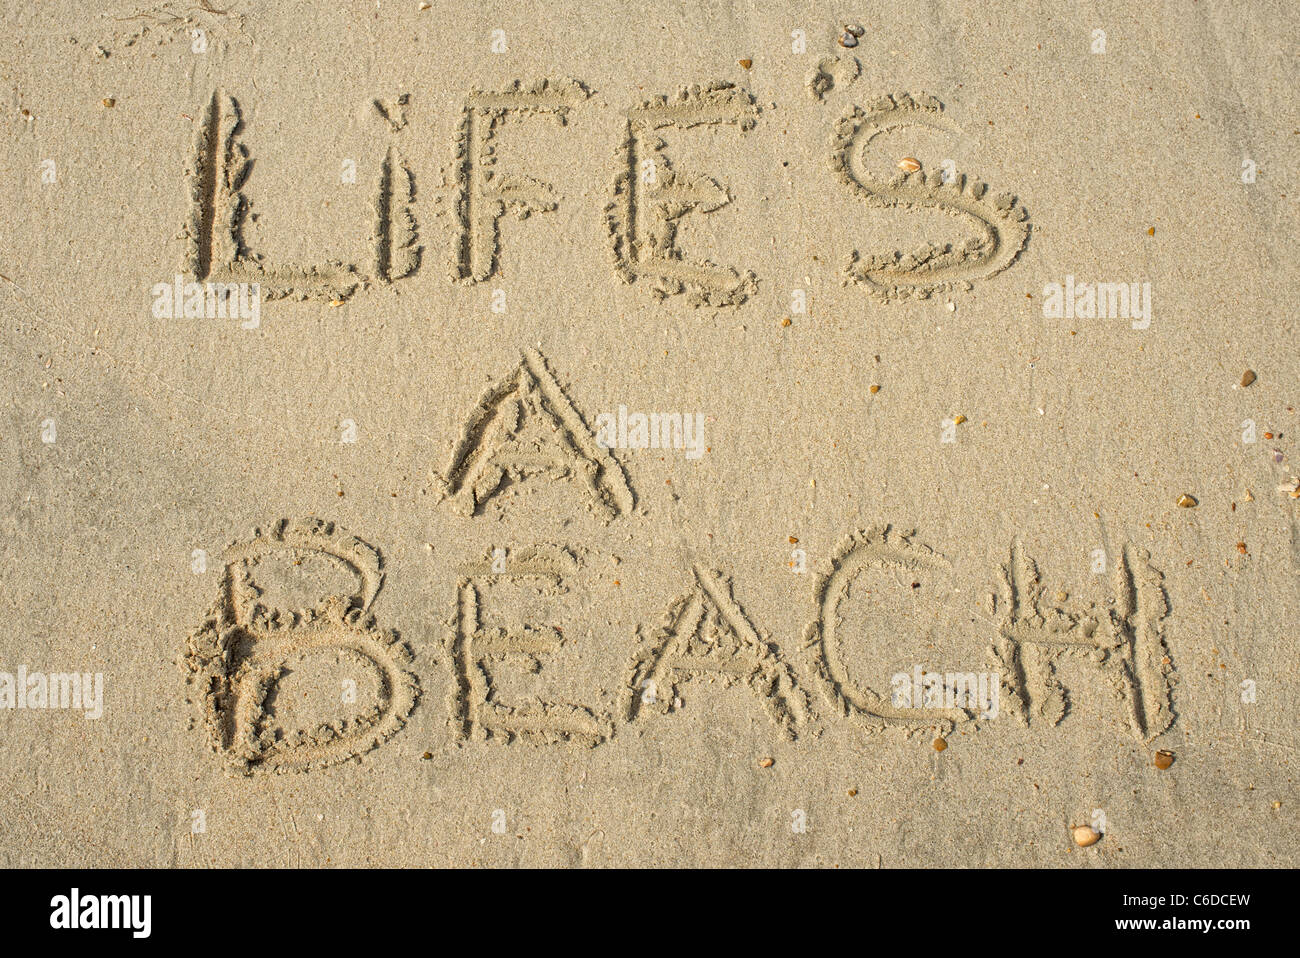 Life's a beach message written in the sand - Stock Image